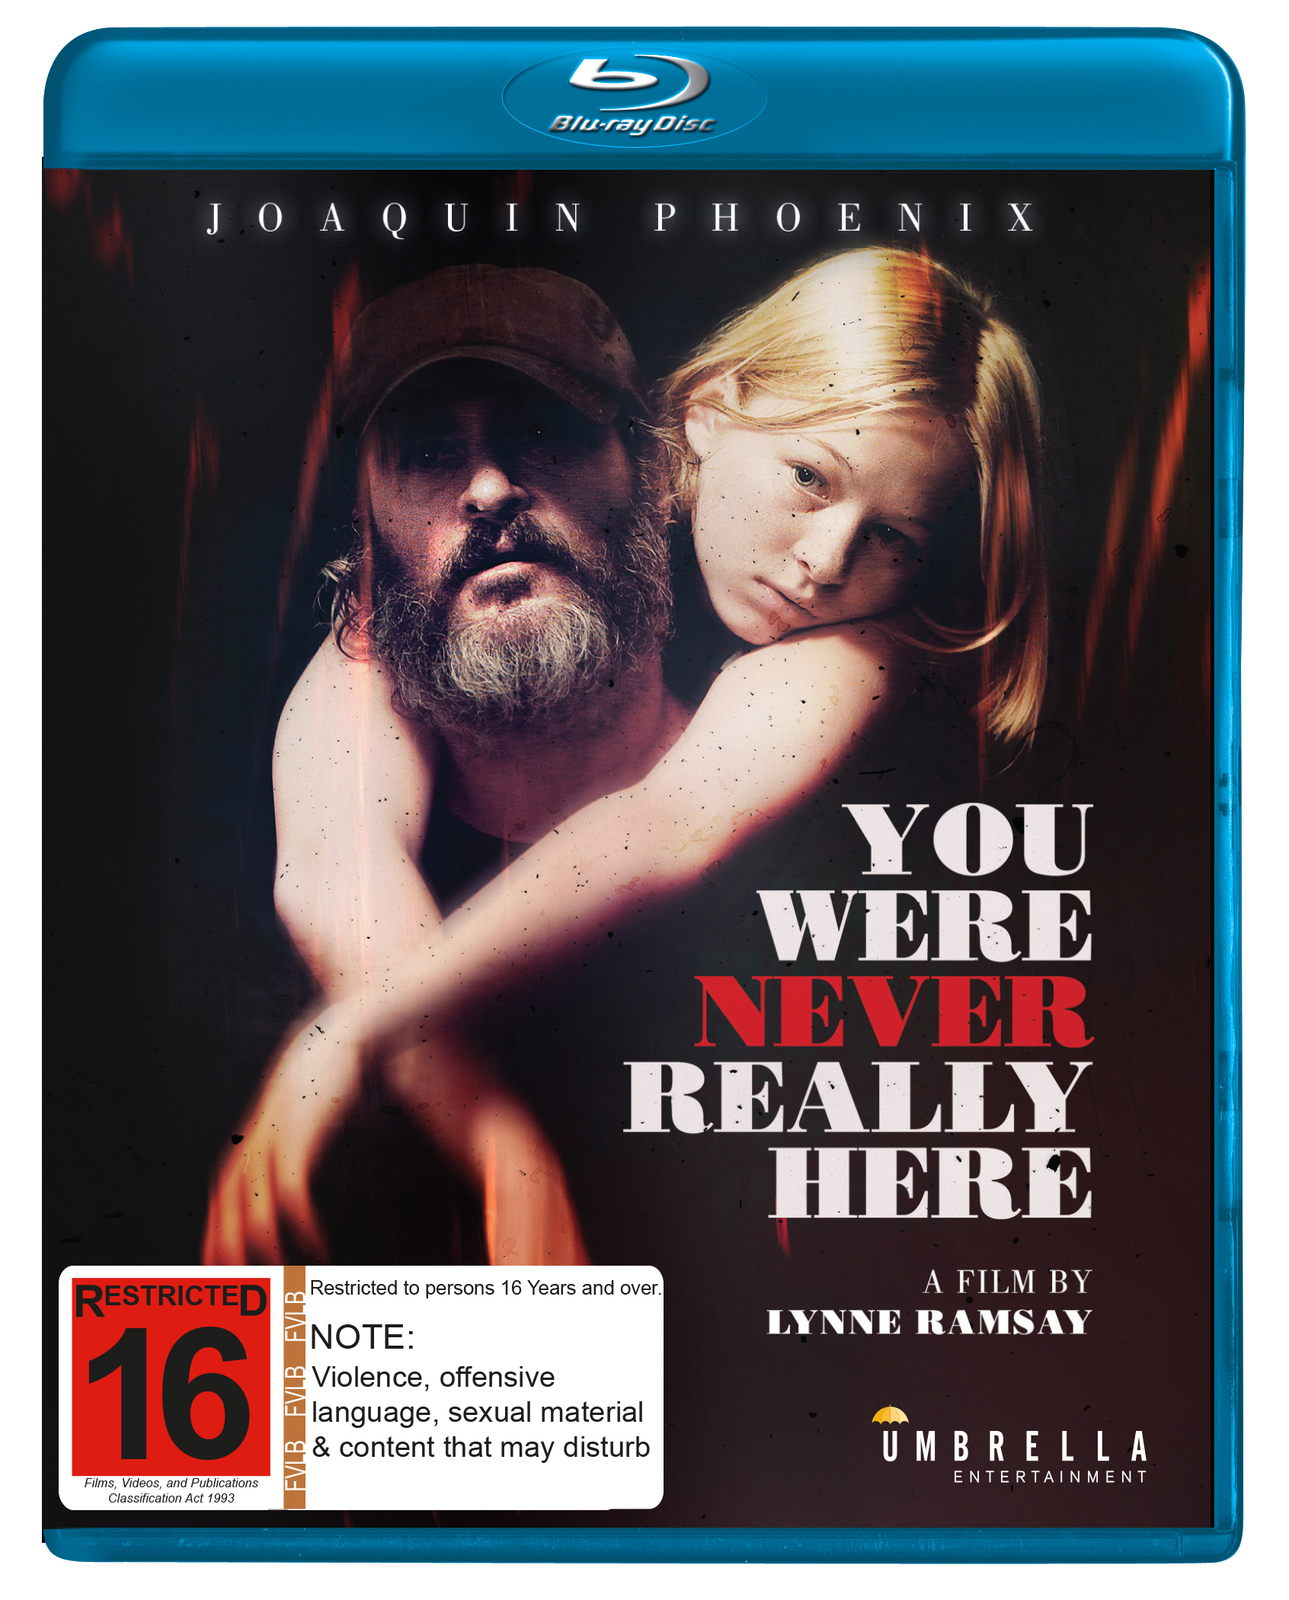 You Were Never Really Here on Blu-ray image